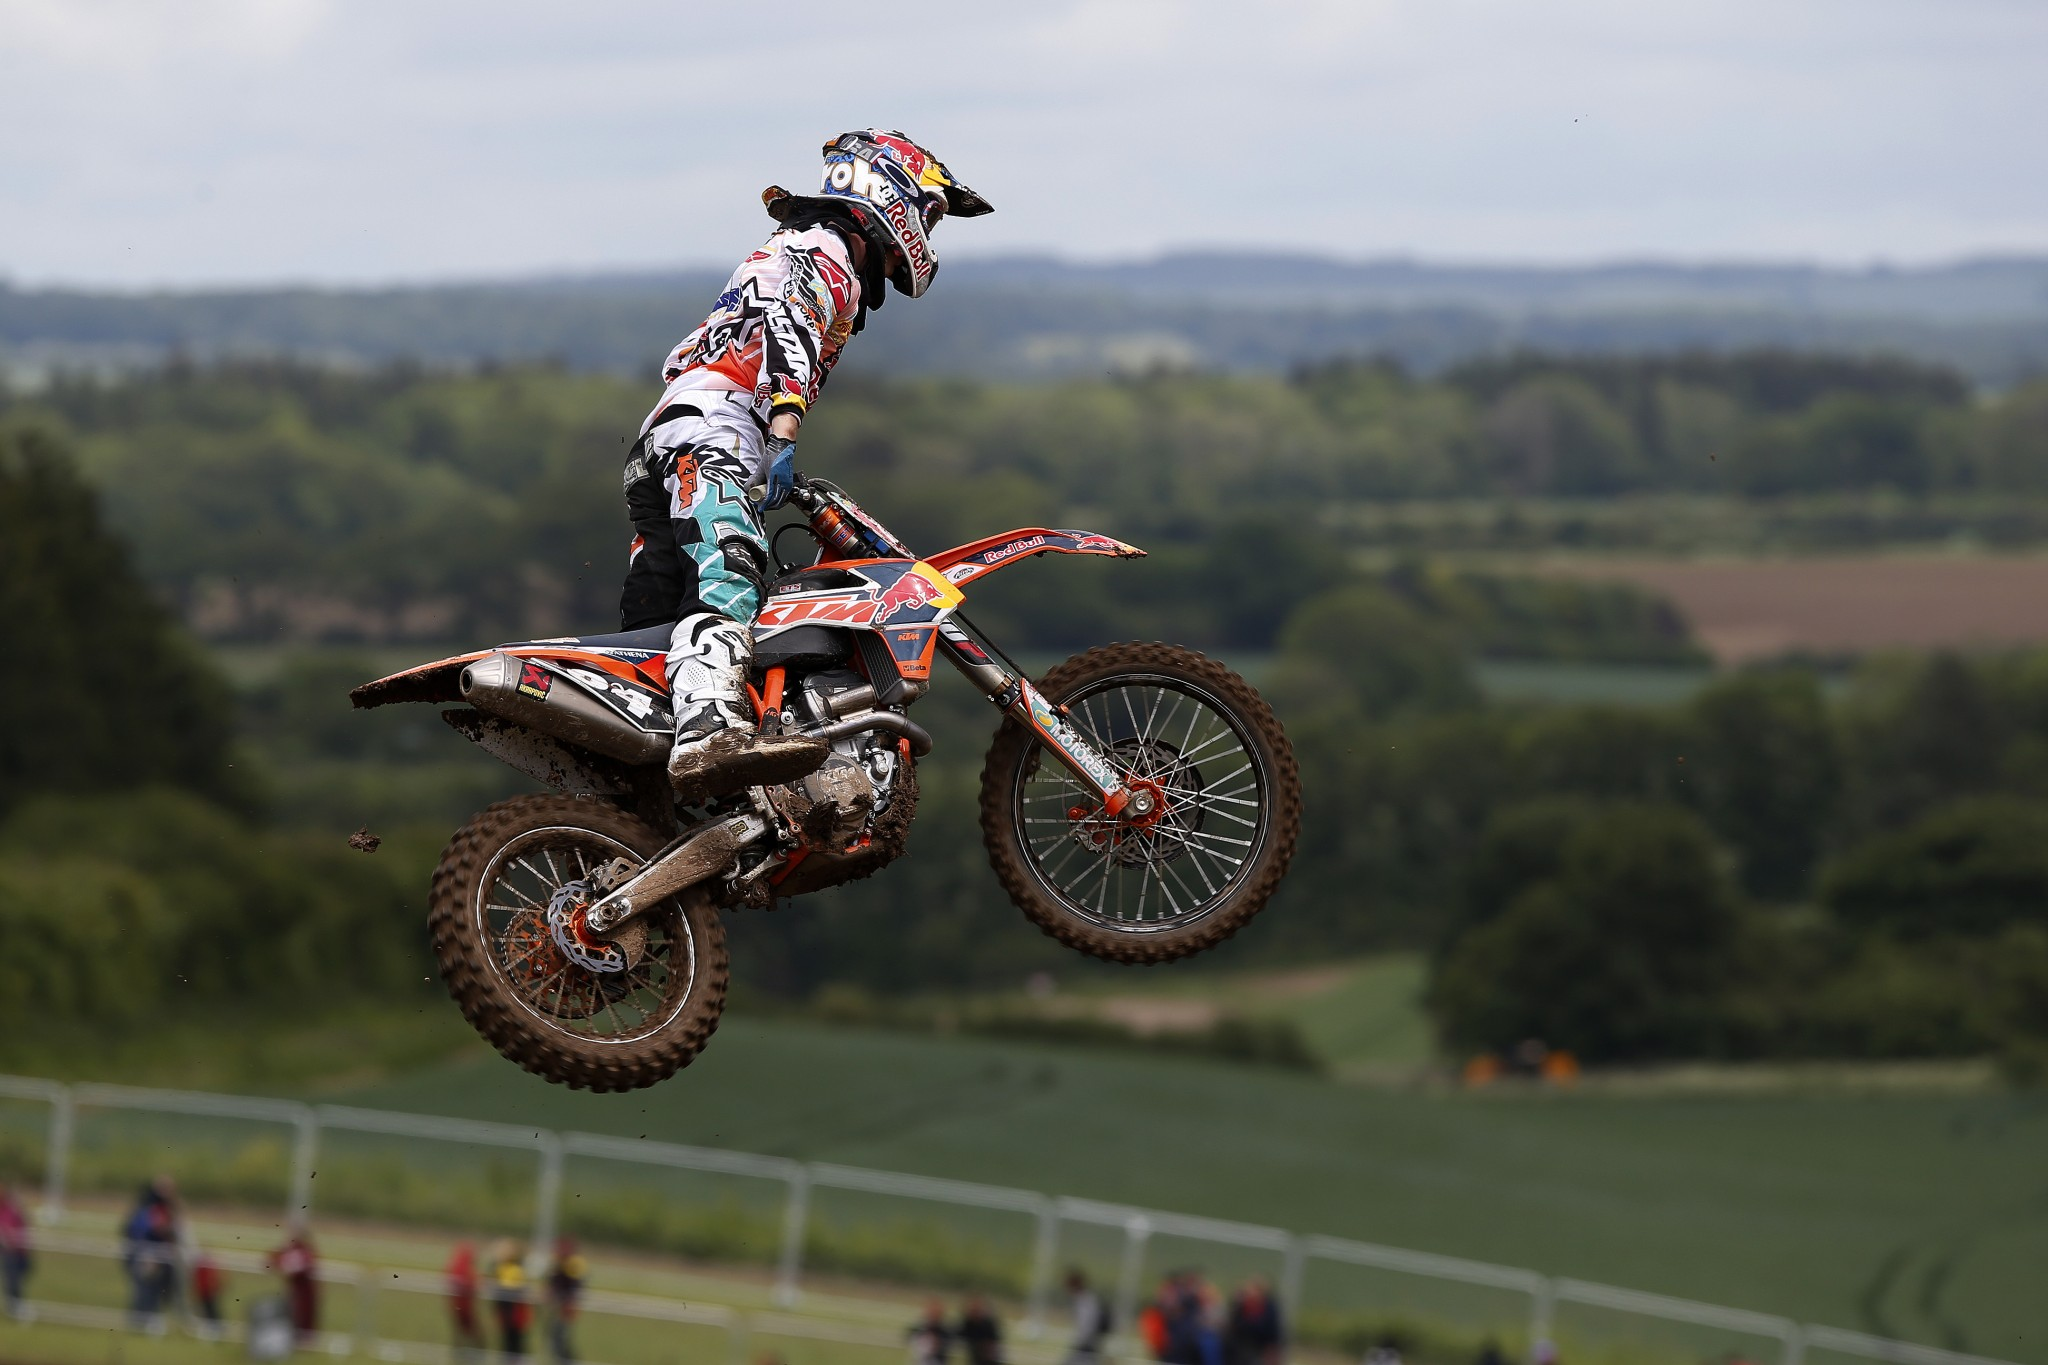 87909_Herlings_MXGP_2014_R08_RX_0387